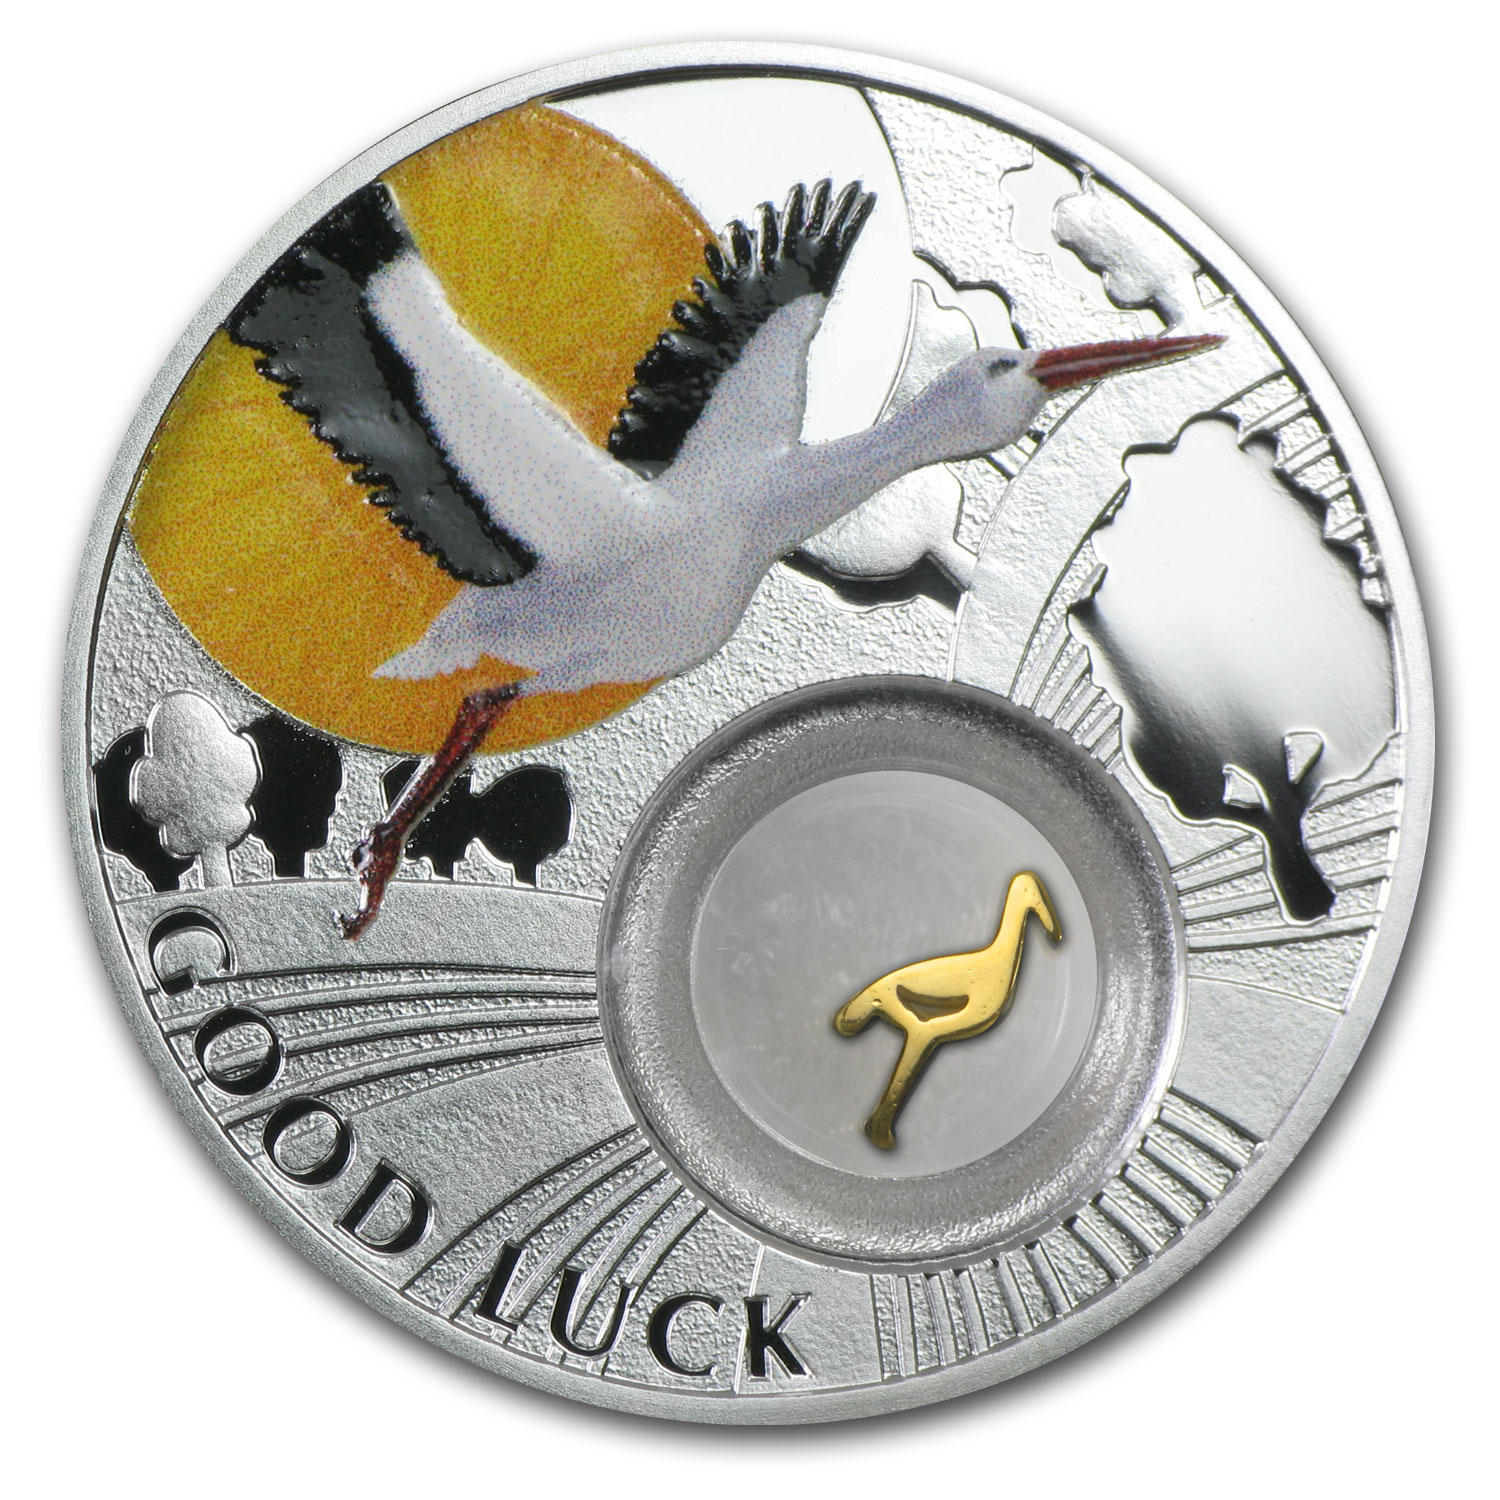 2014 Niue Proof Silver $1 Good Luck Series Stork